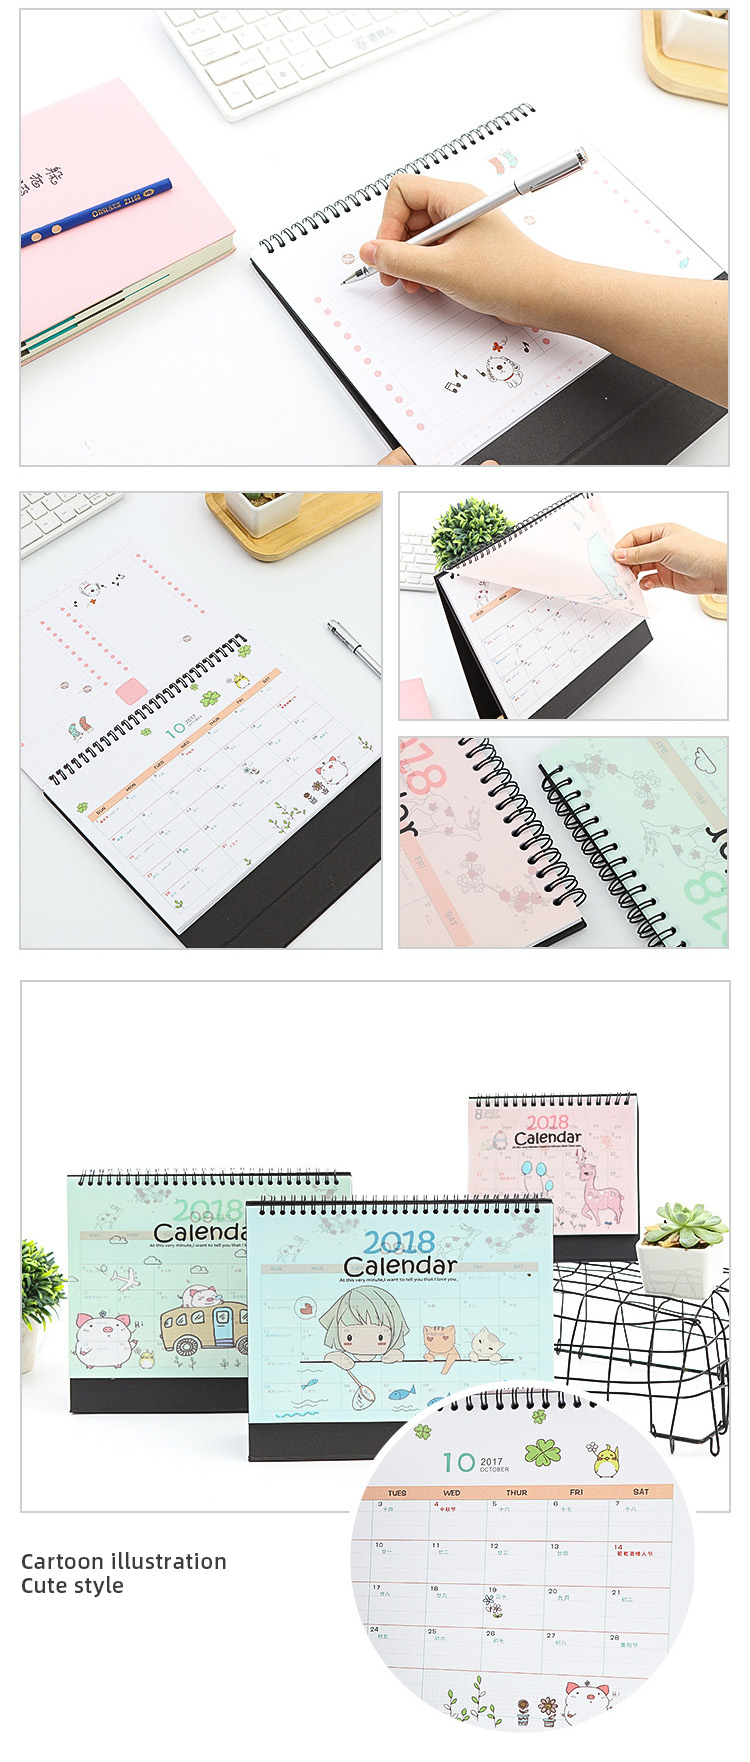 low moq small size custom made new design table stand monthly planner calendar